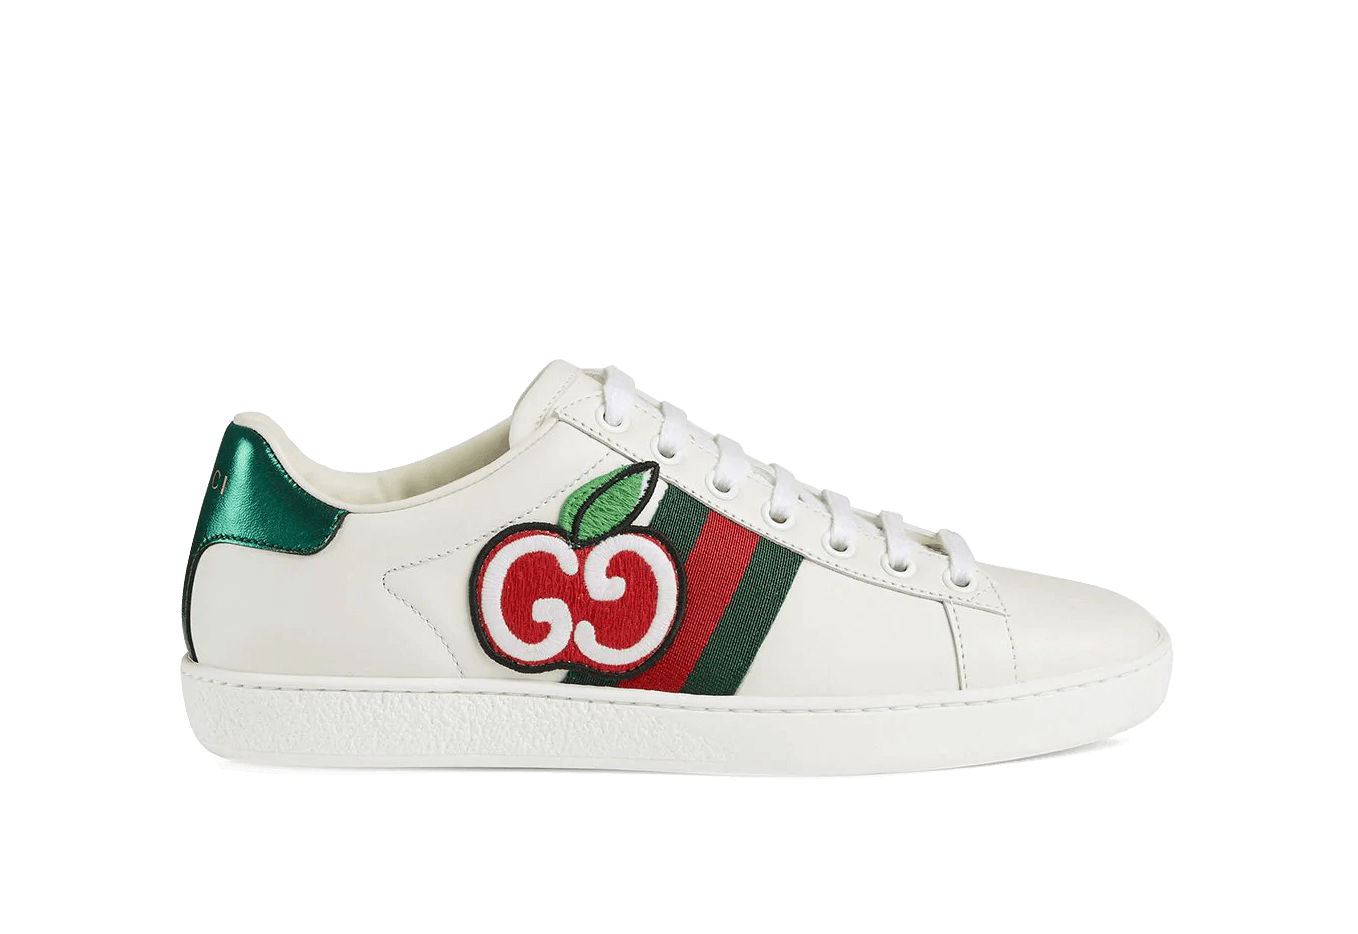 For sale the best Gucci     GG Apple Sneakers